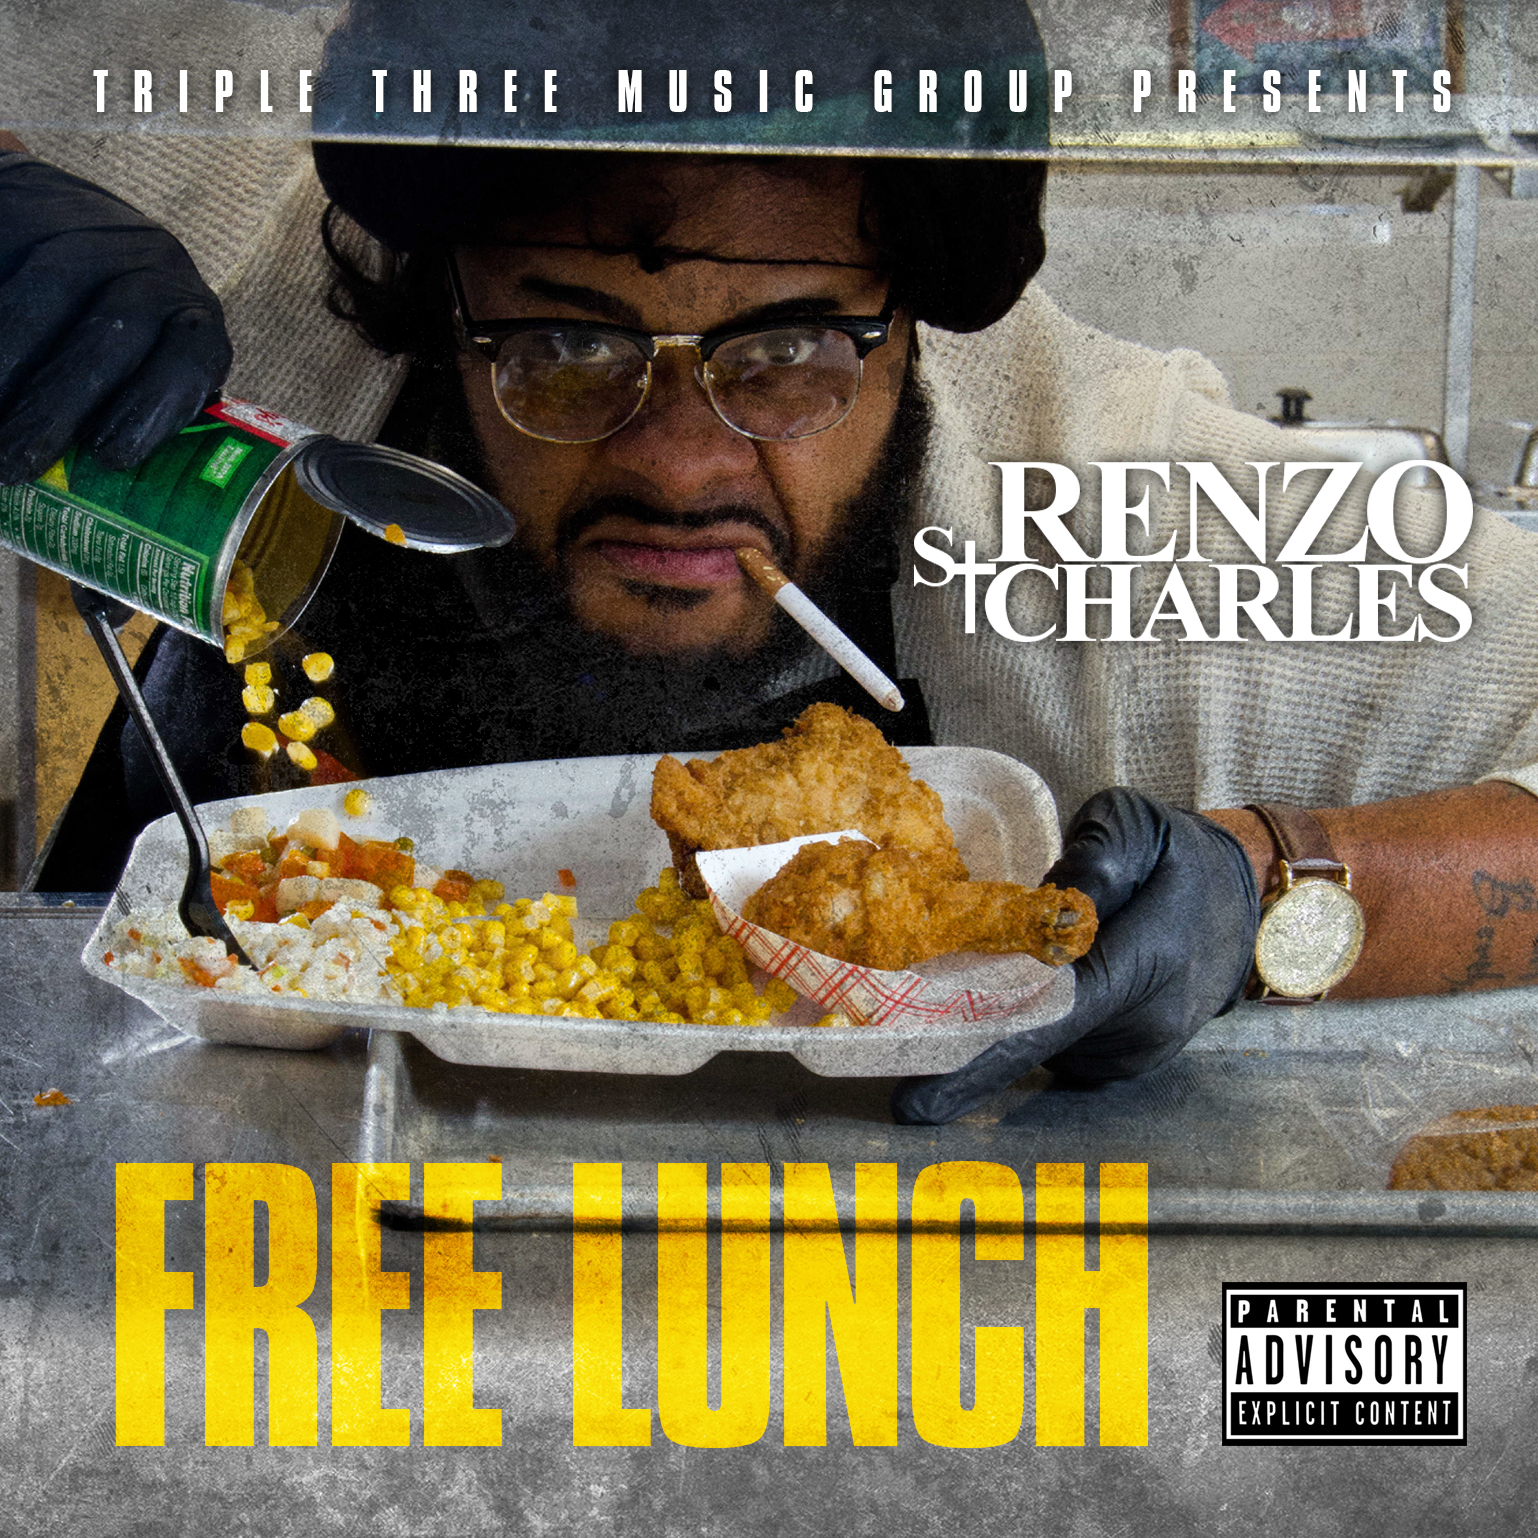 Copy of Triple Three Music Group - Free Lunch